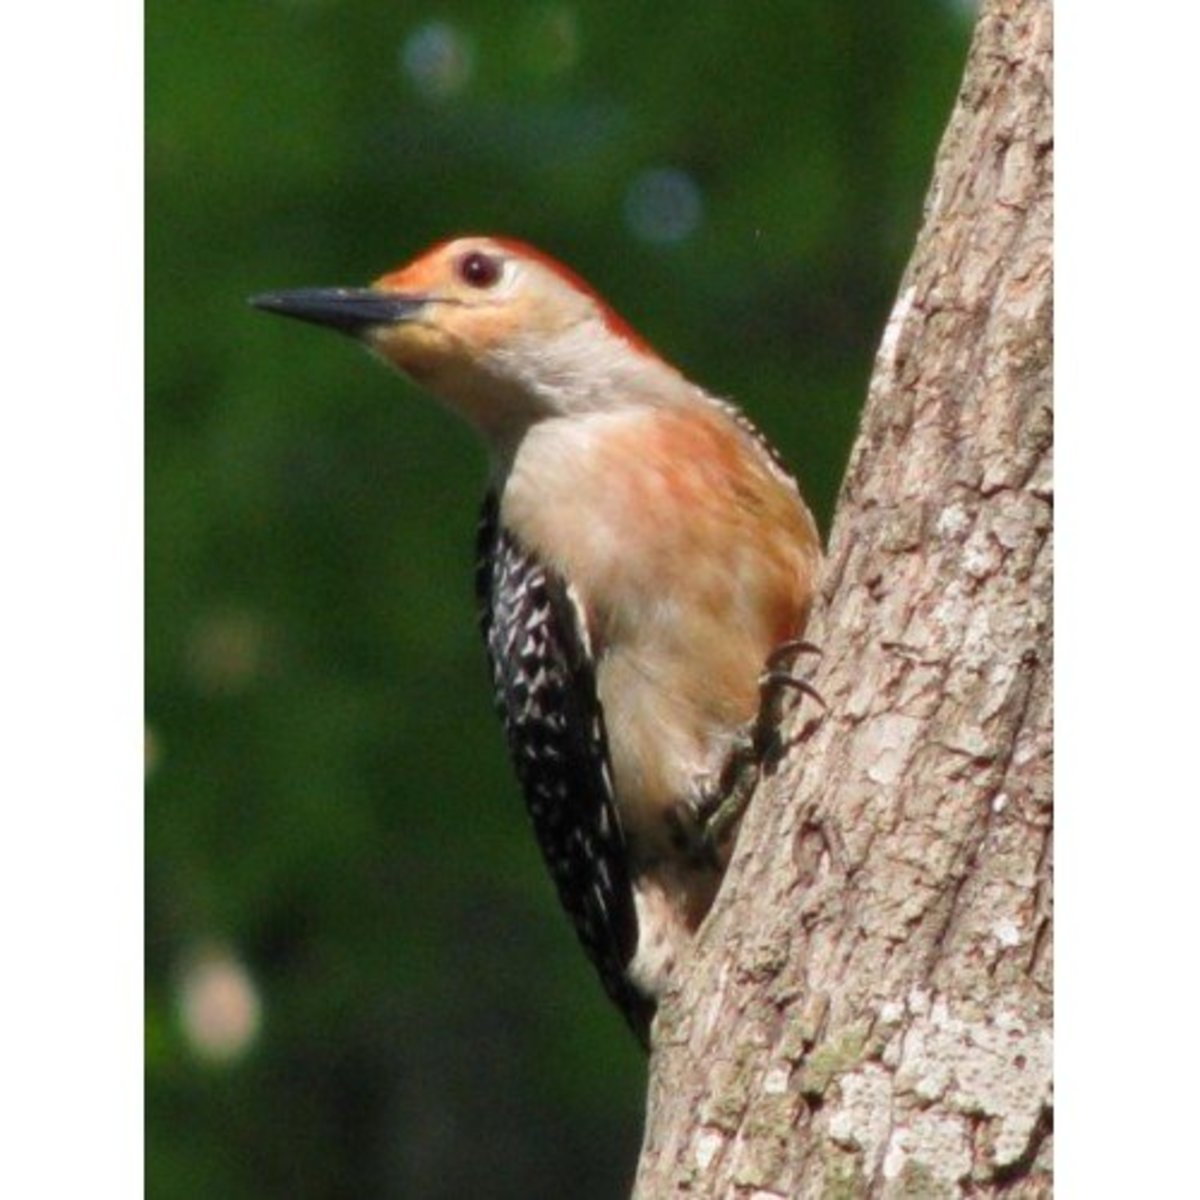 Pictures of Birds - Woodpeckers in Southeastern Louisiana